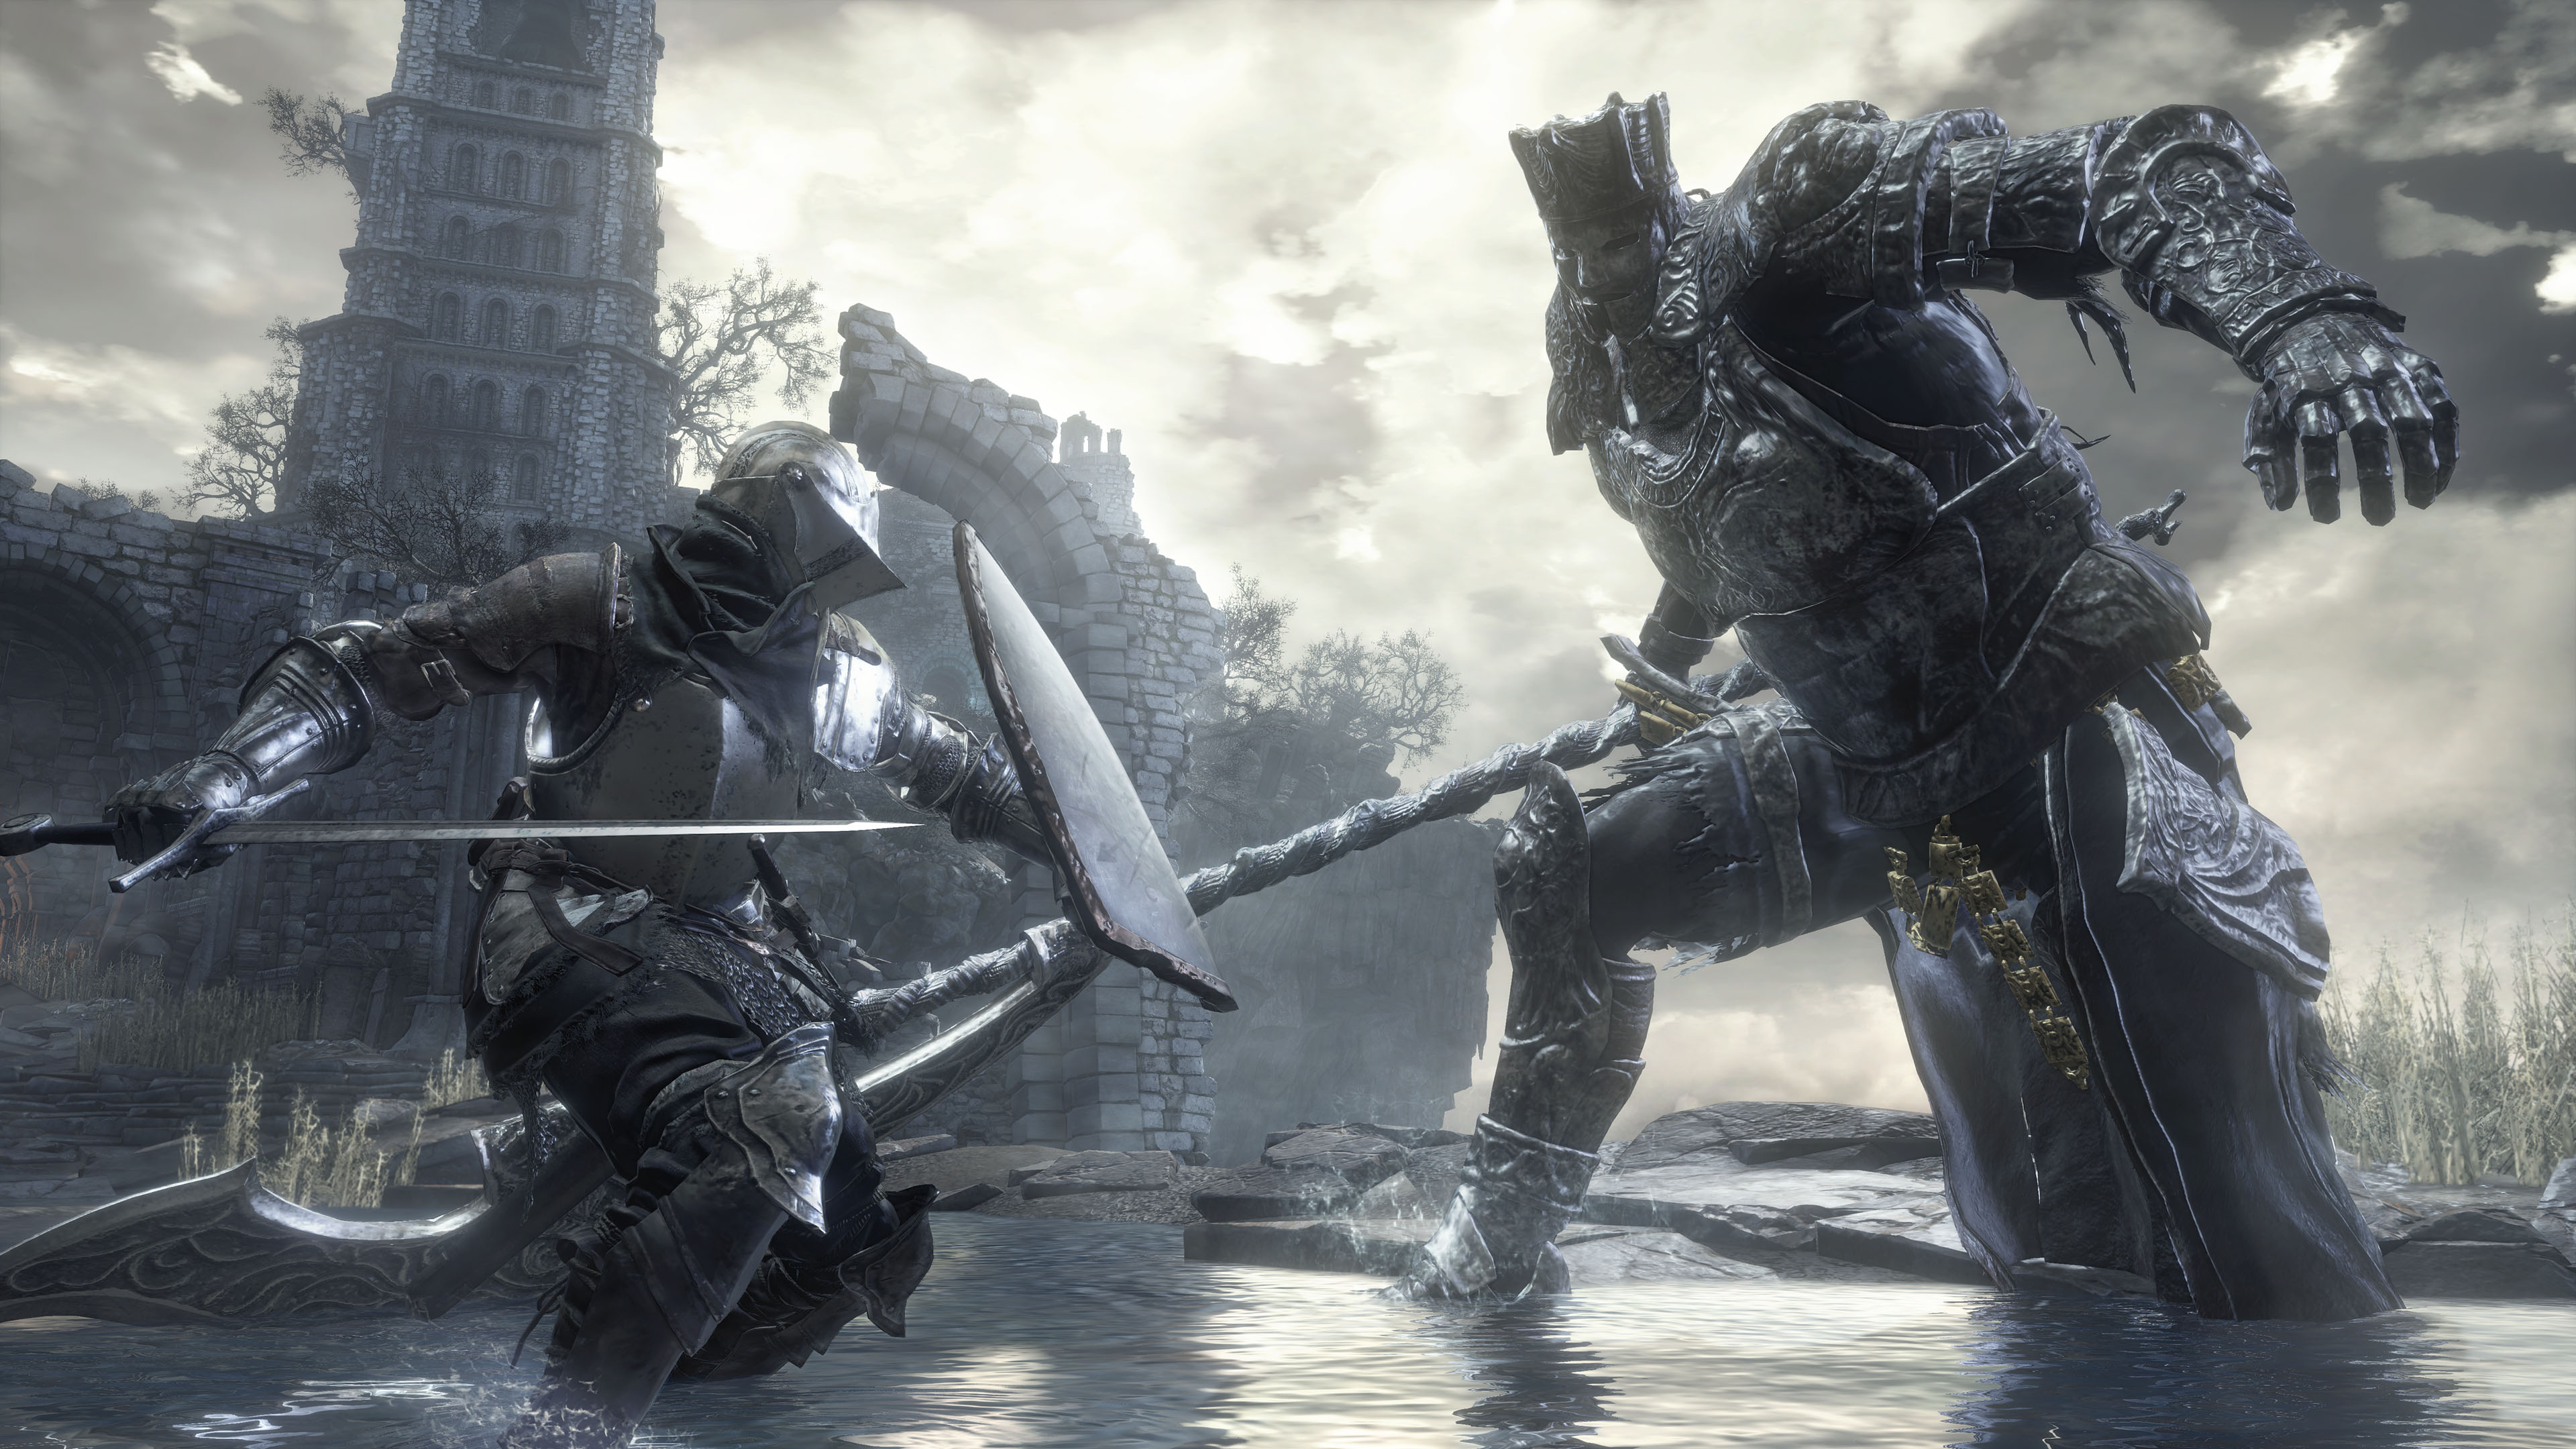 Dark Souls 3 season pass leaked, comes with two DLC packs | VG247